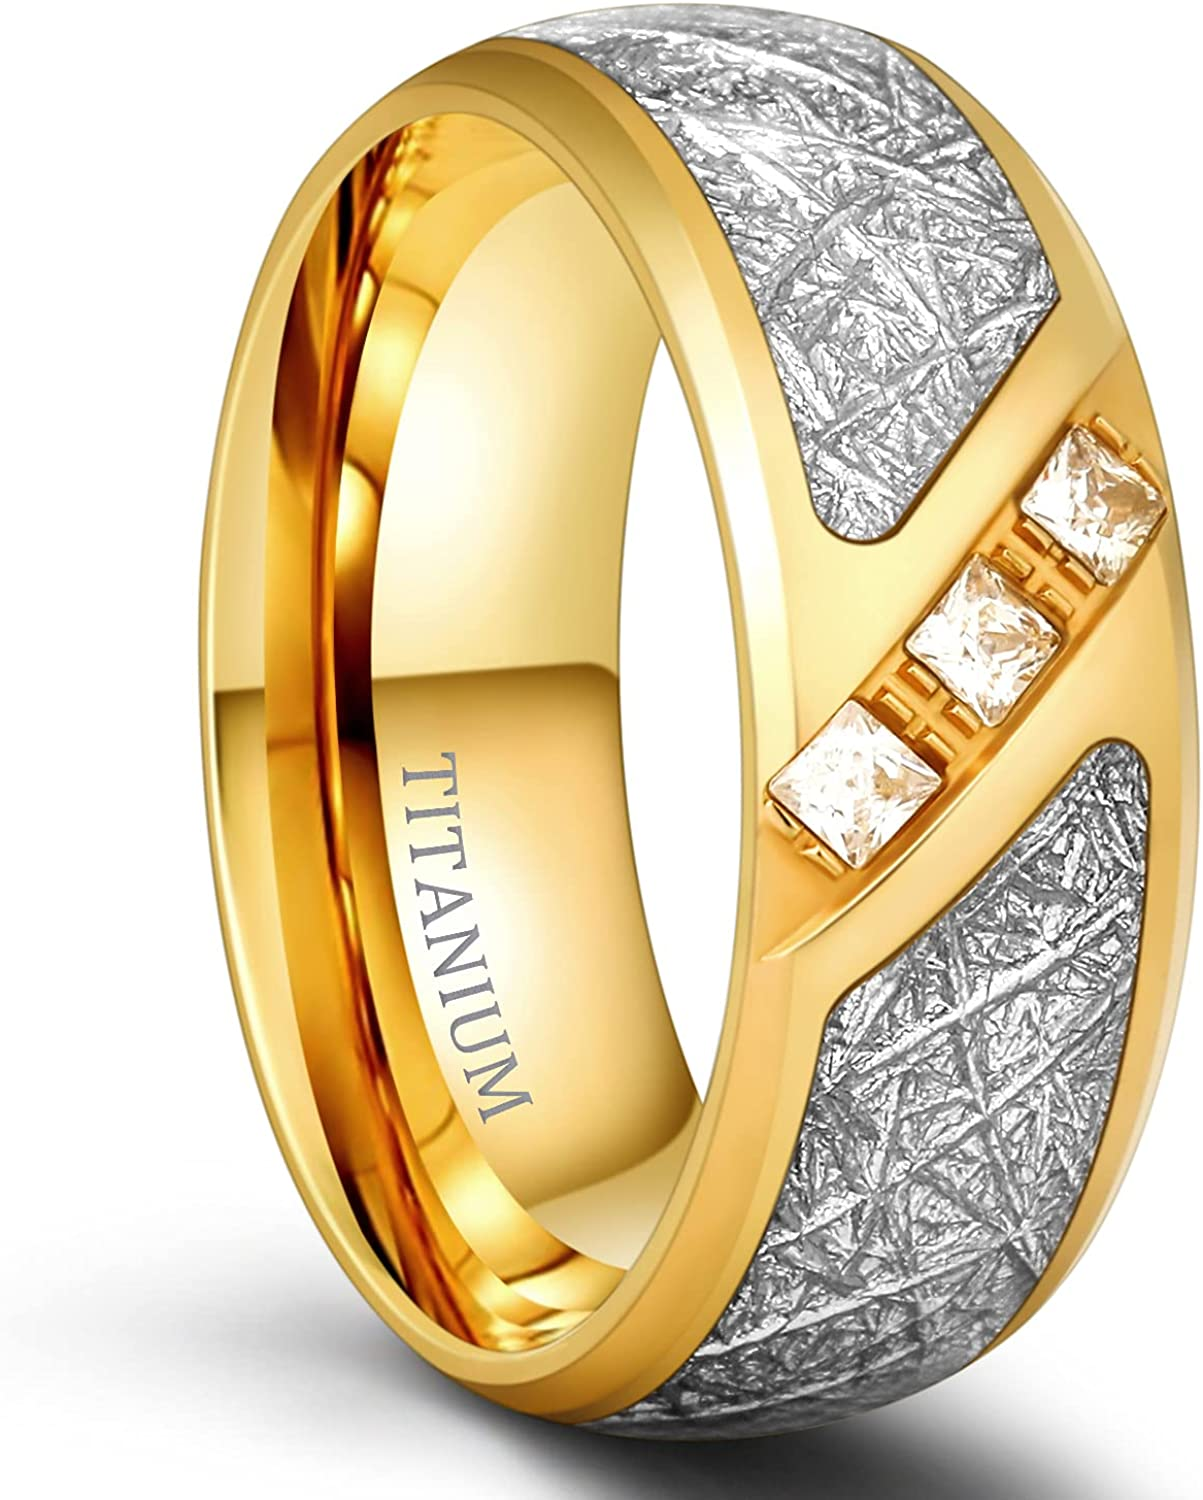 TIGRADE 8mm Gold Titanium Ring for Men Women Cubic Zirconia Meteorite Inlay Dome Polished Wedding Band Comfort Fit Size 7-12